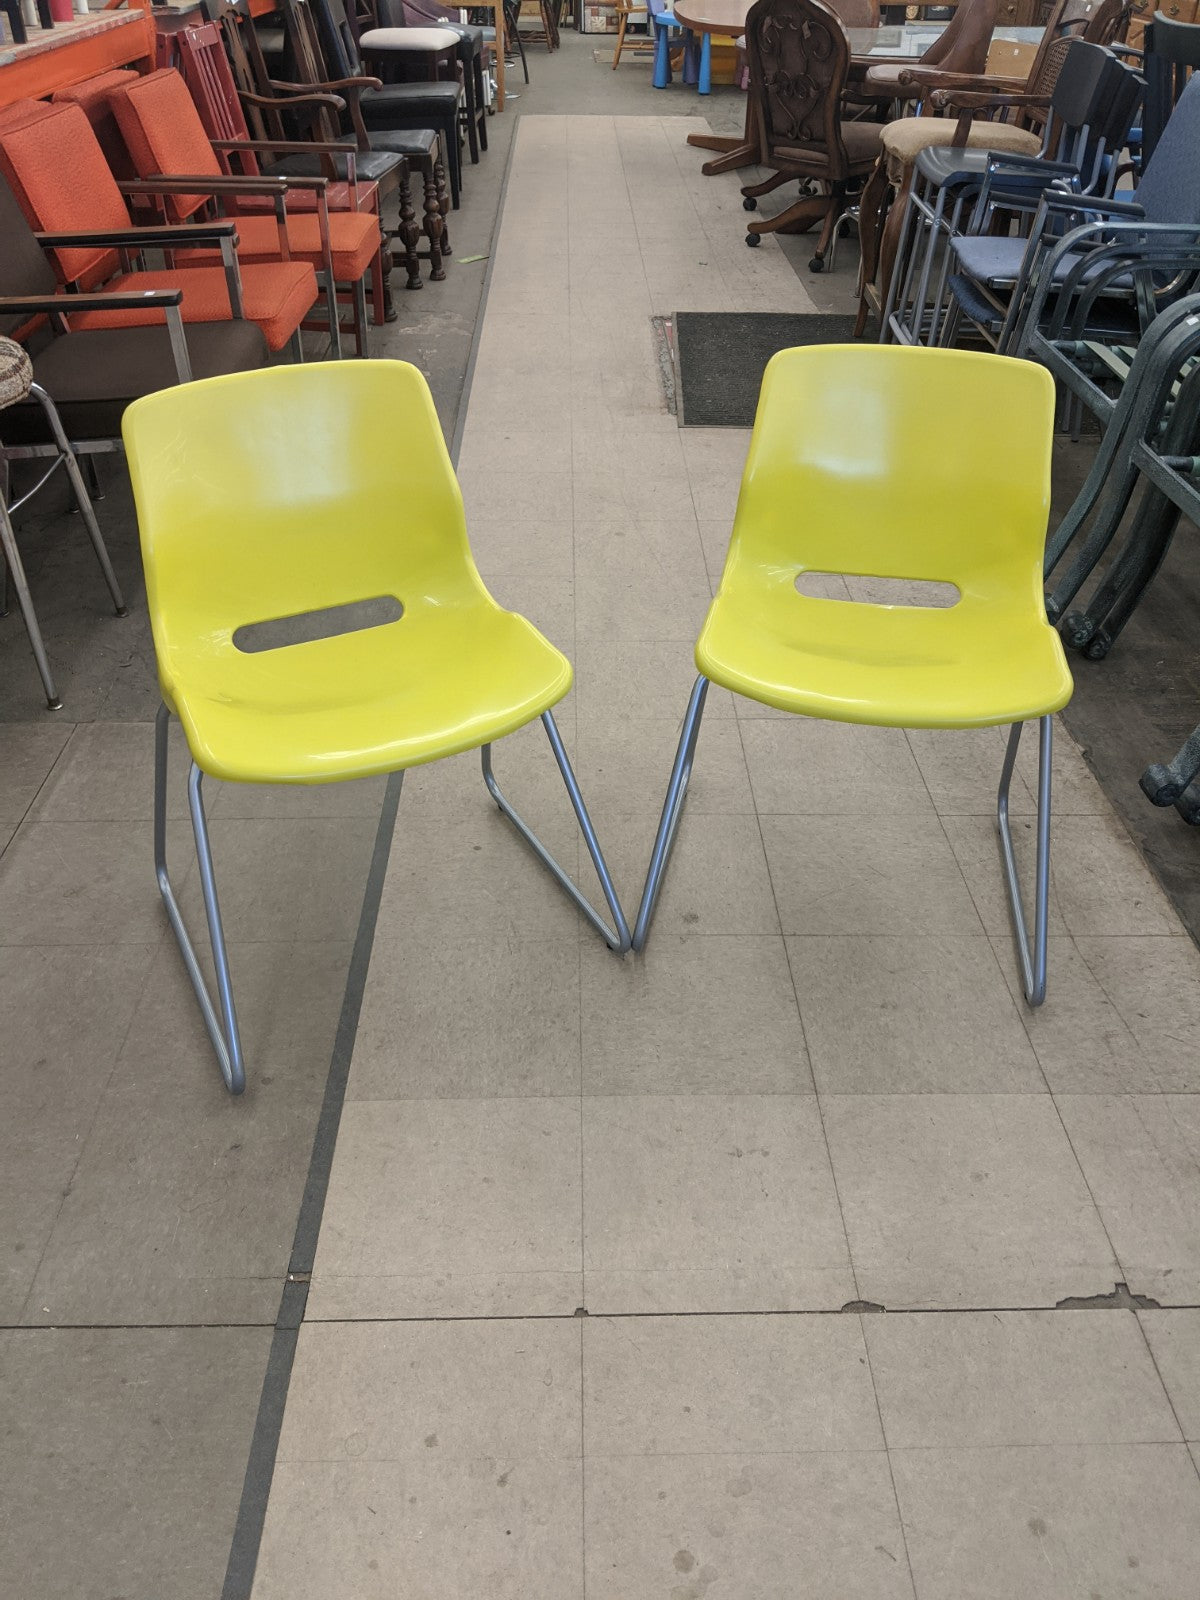 Ikea Snille chairs (2)